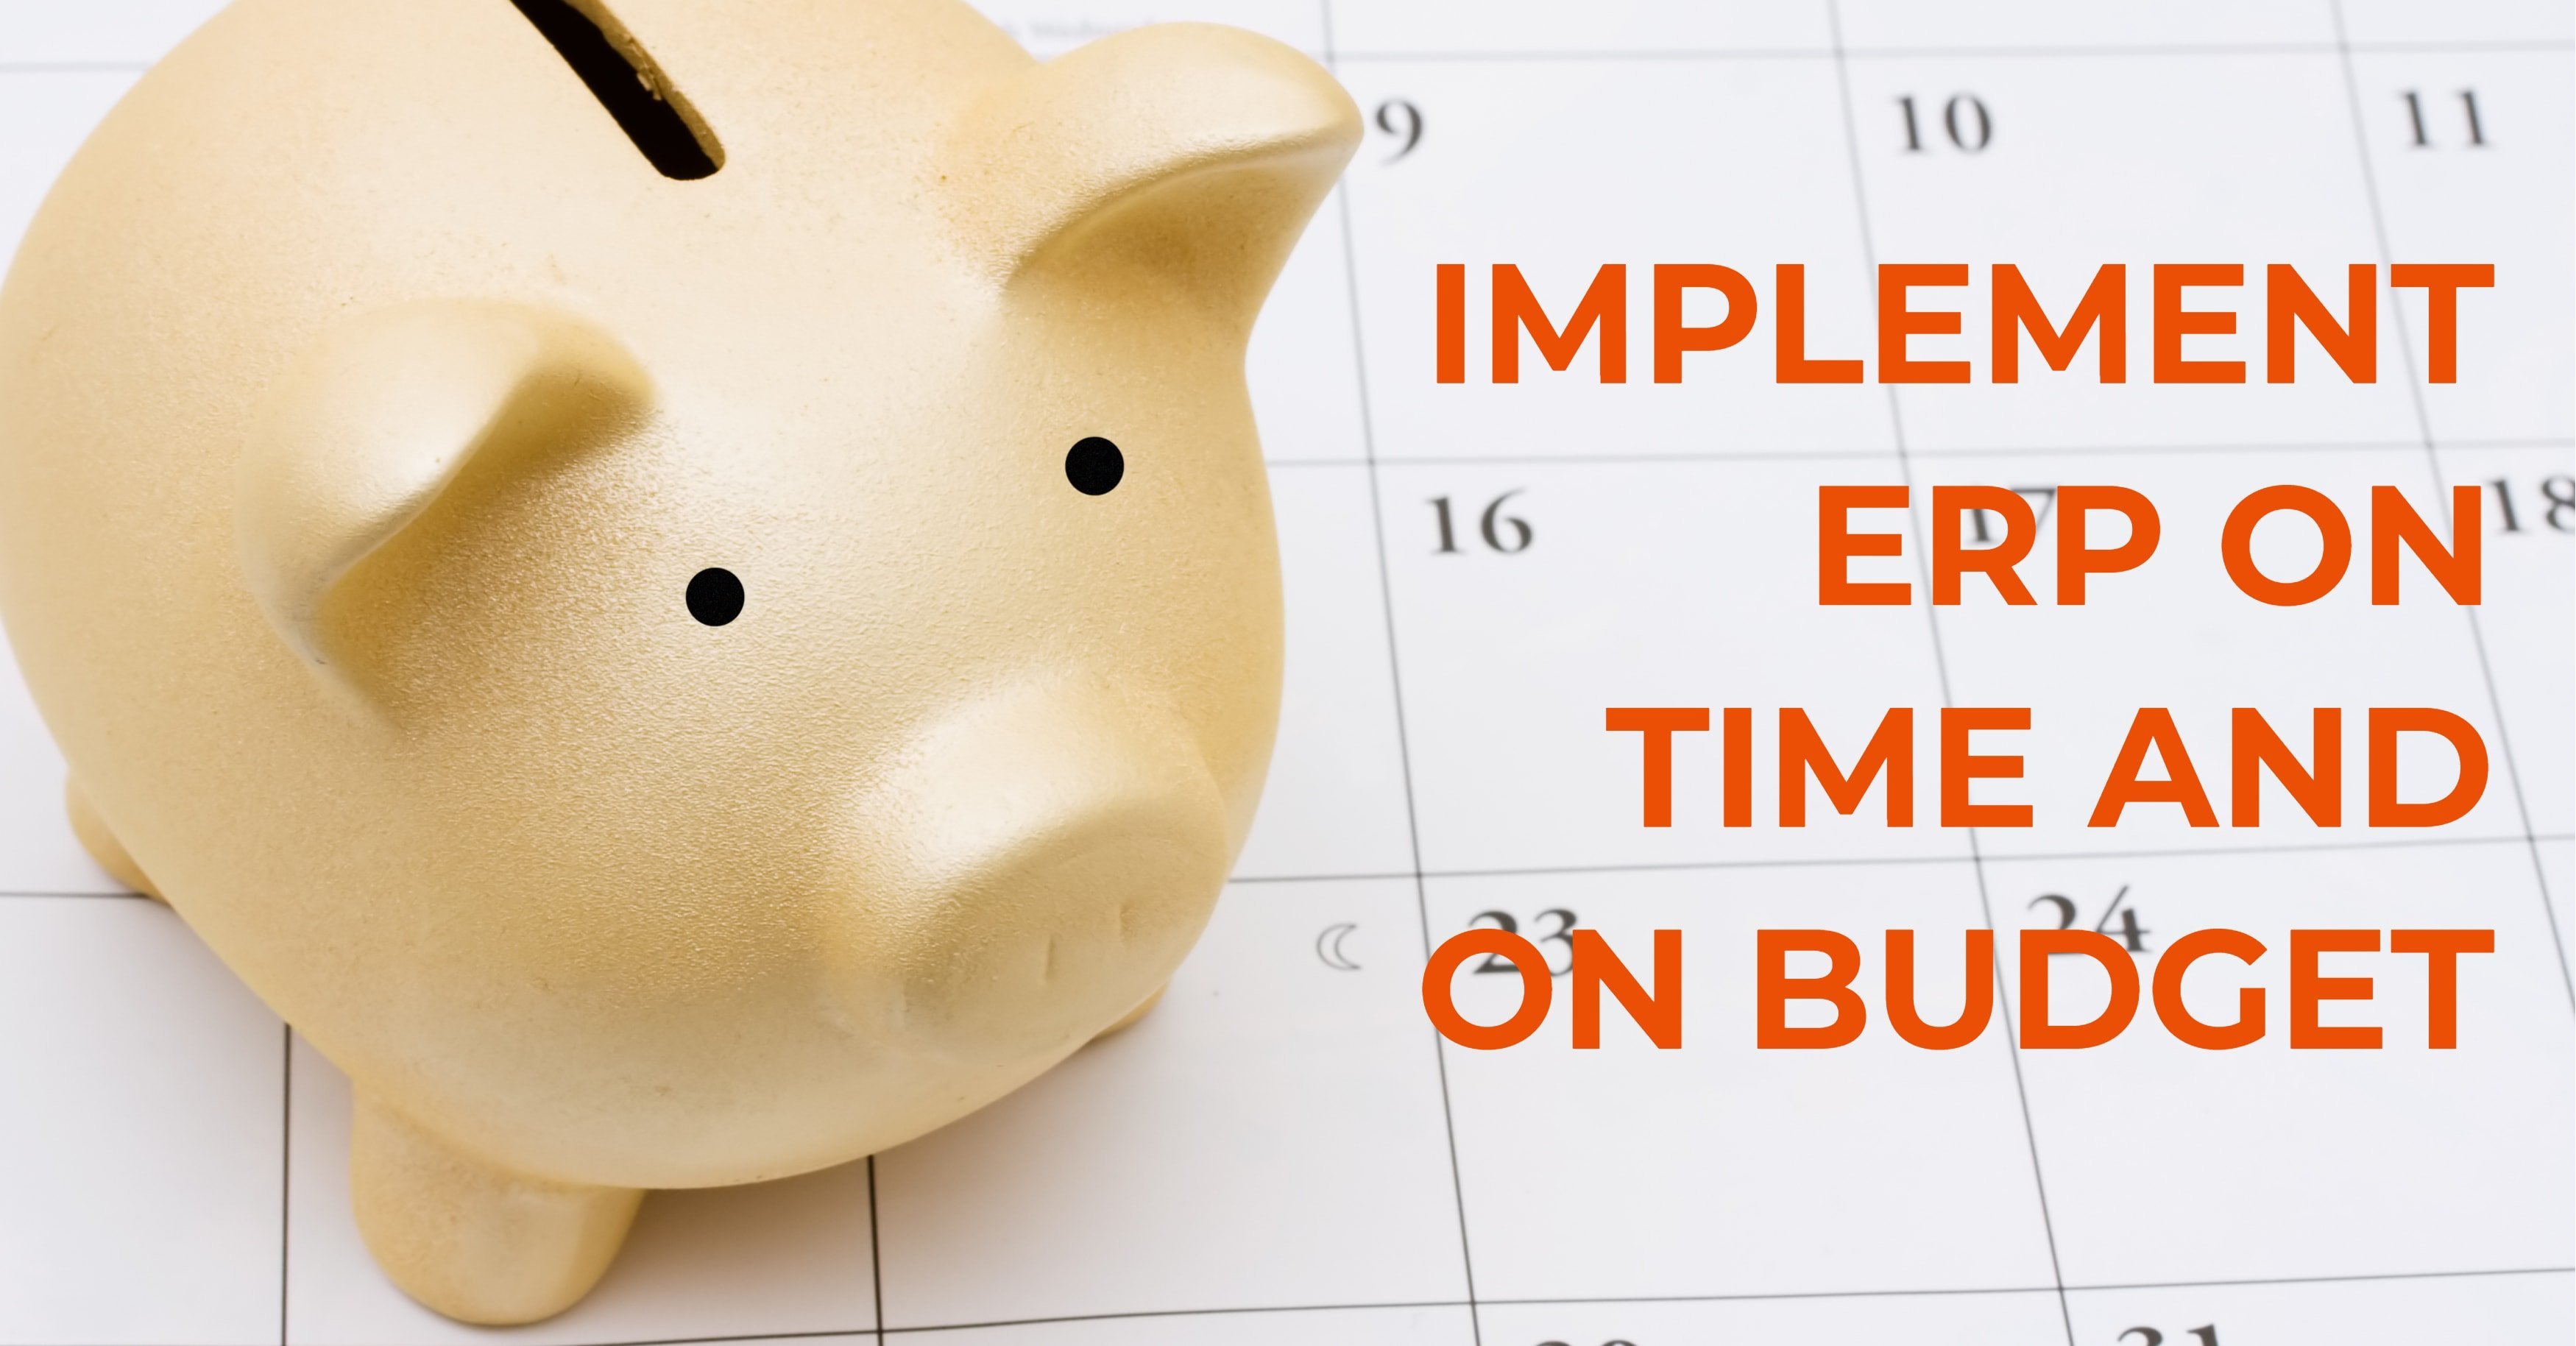 ERP On Time On Budget